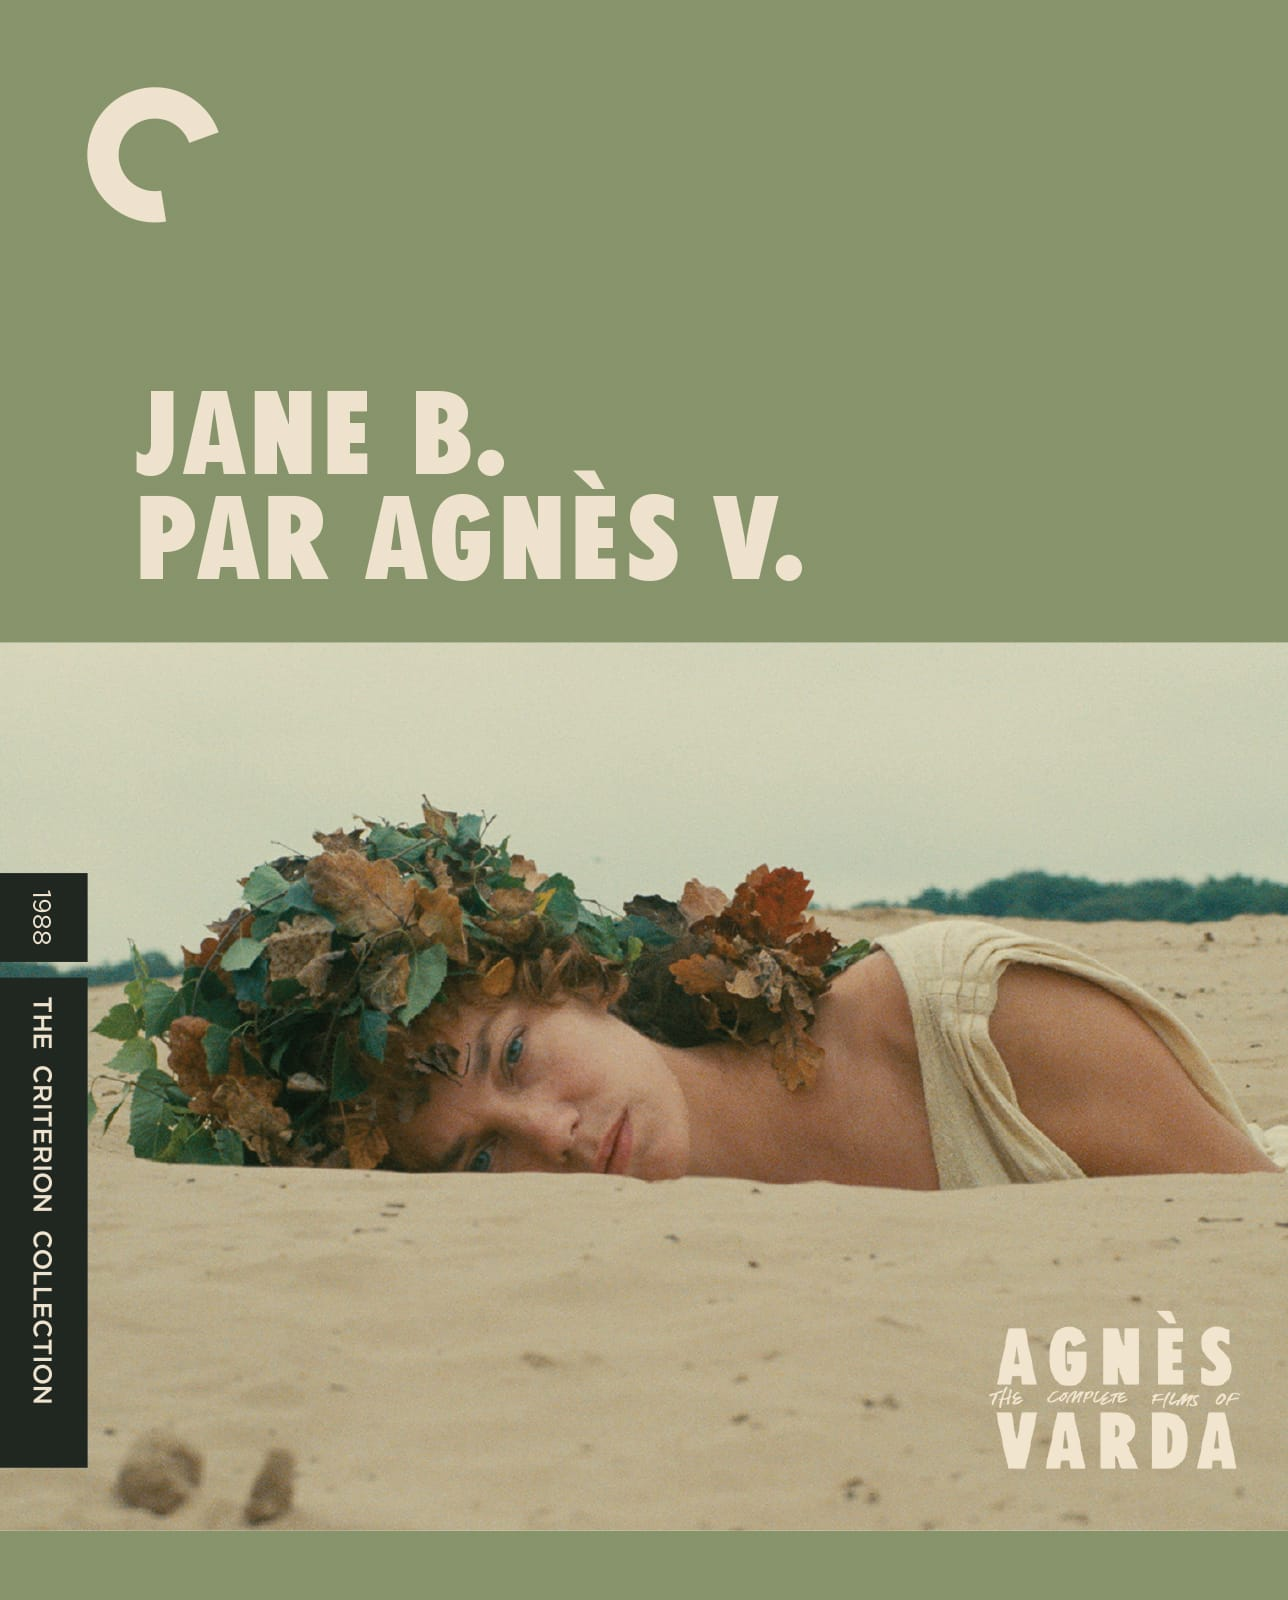 Jane B. par Agnès V. (1988) | The Criterion Collection